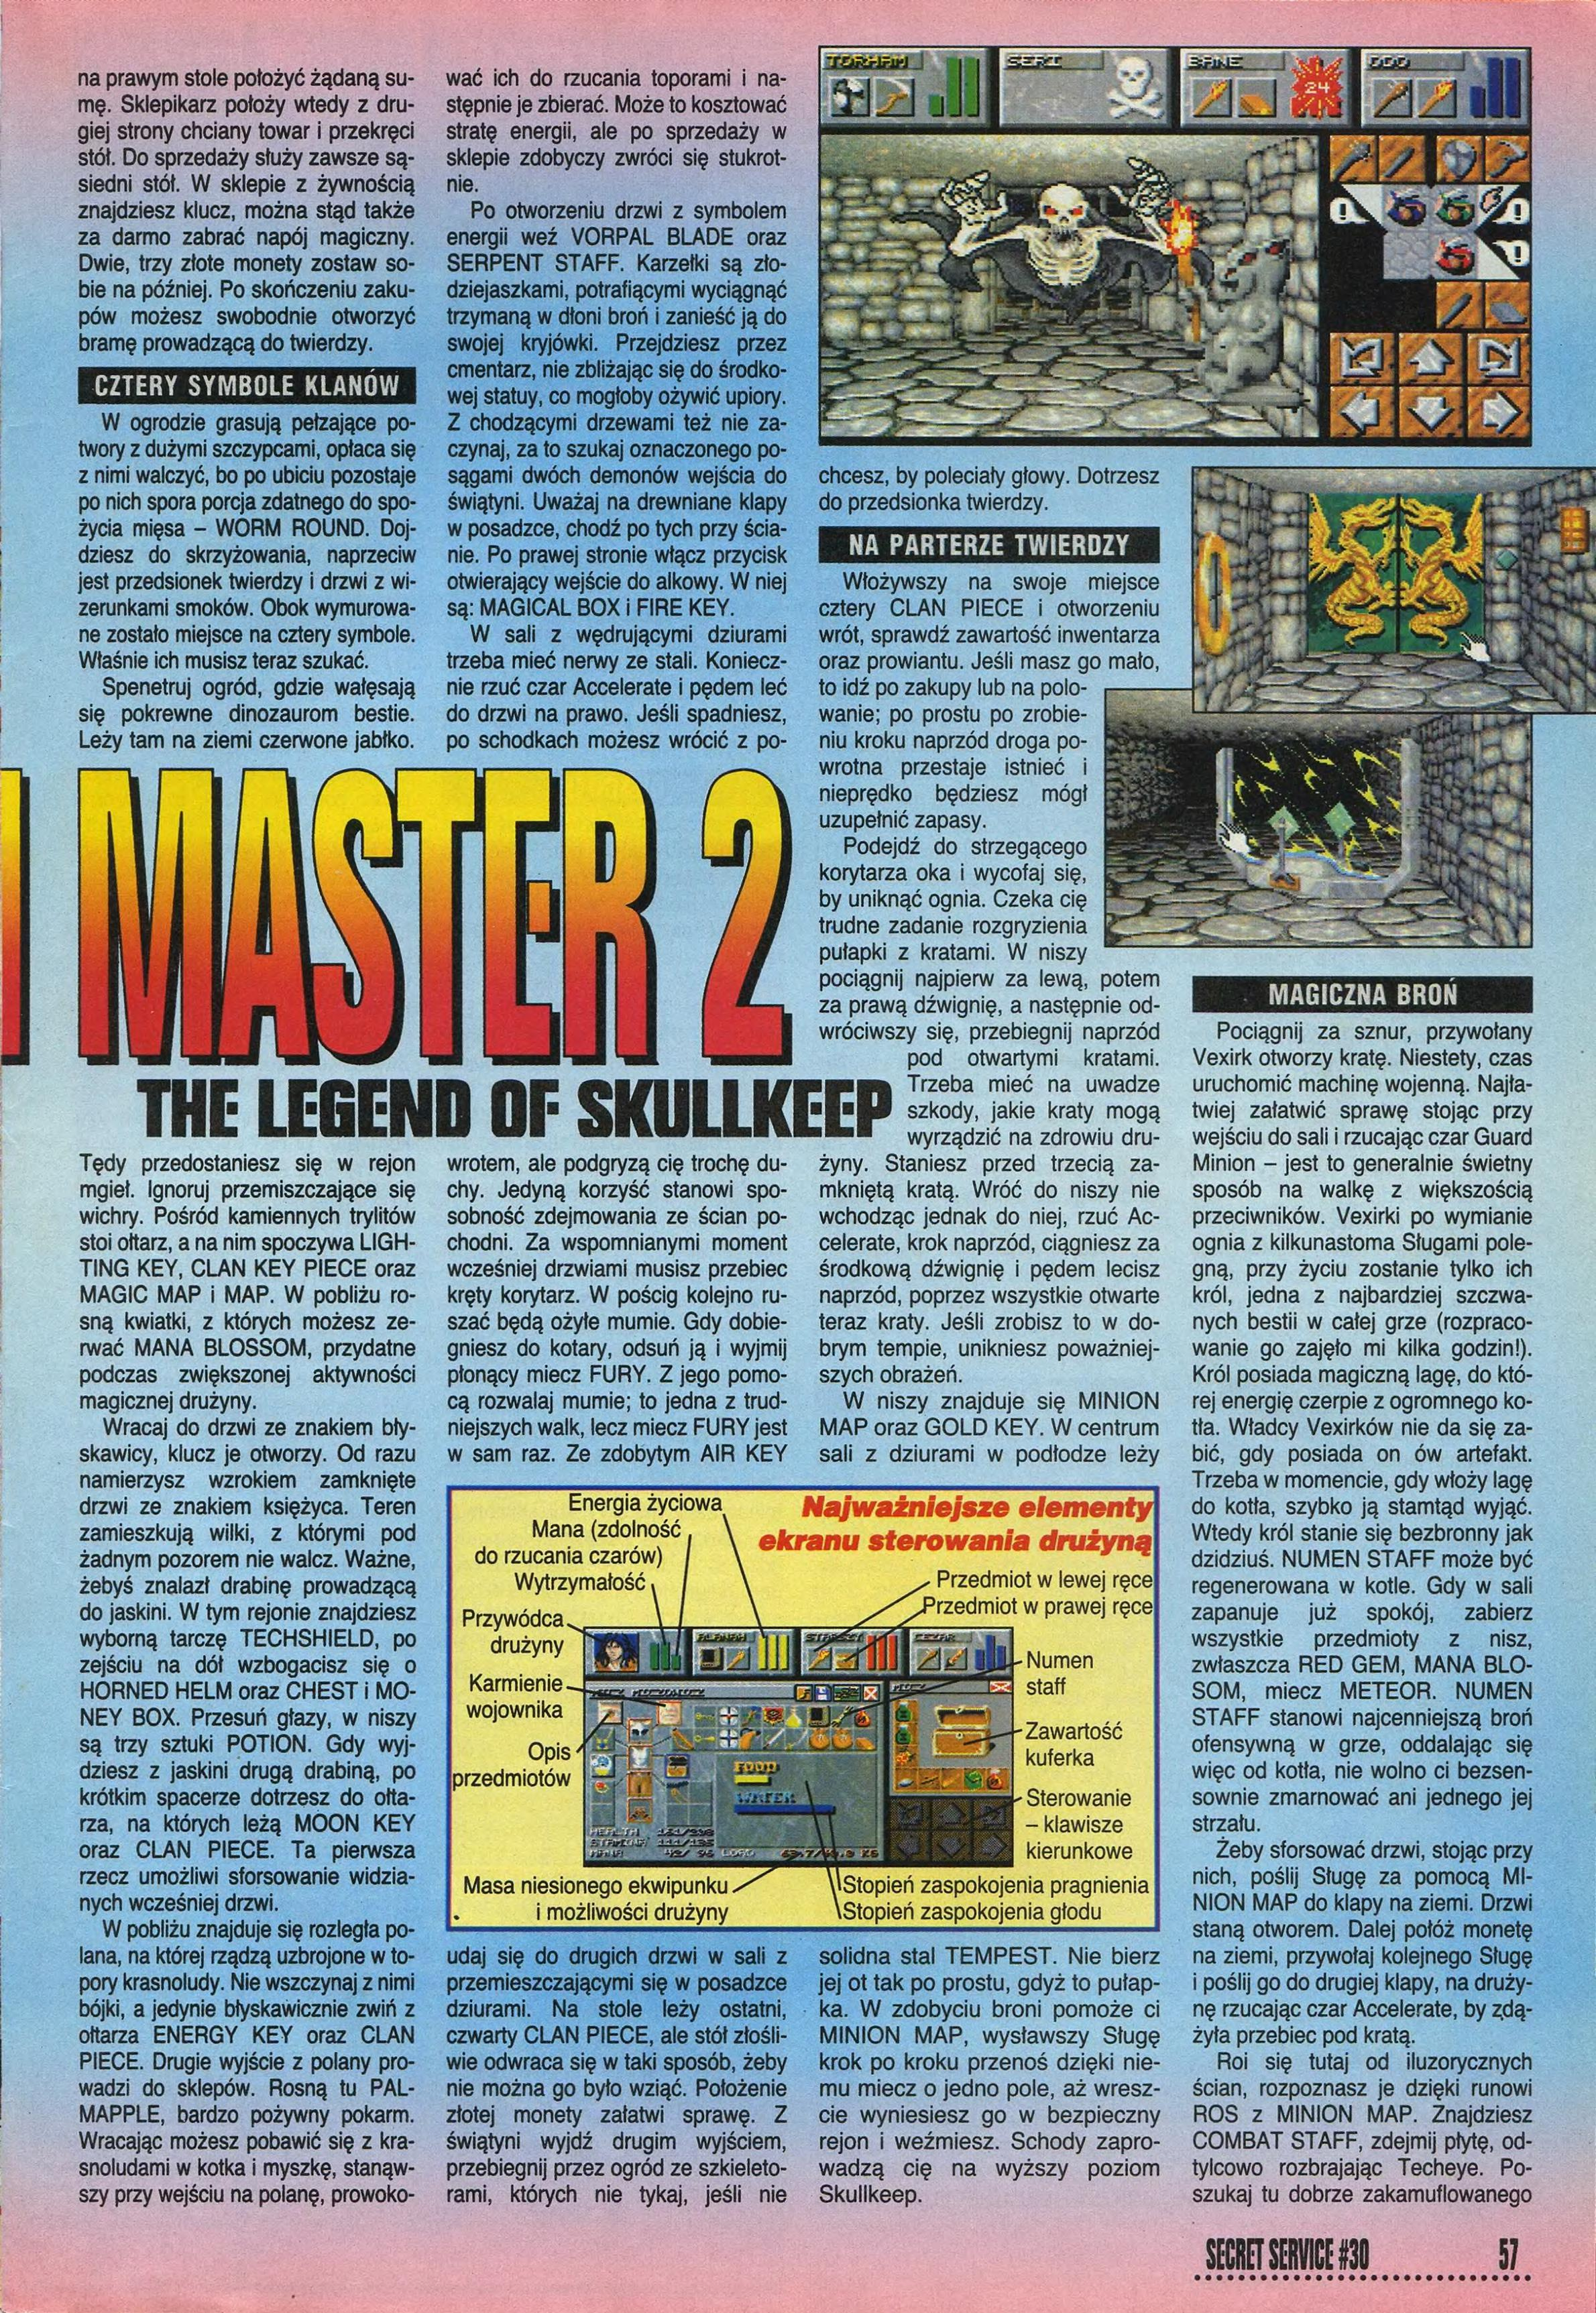 Dungeon Master II for PC-Amiga-Macintosh Review published in Polish magazine 'Secret Service', Issue #30 December 1995, Page 57